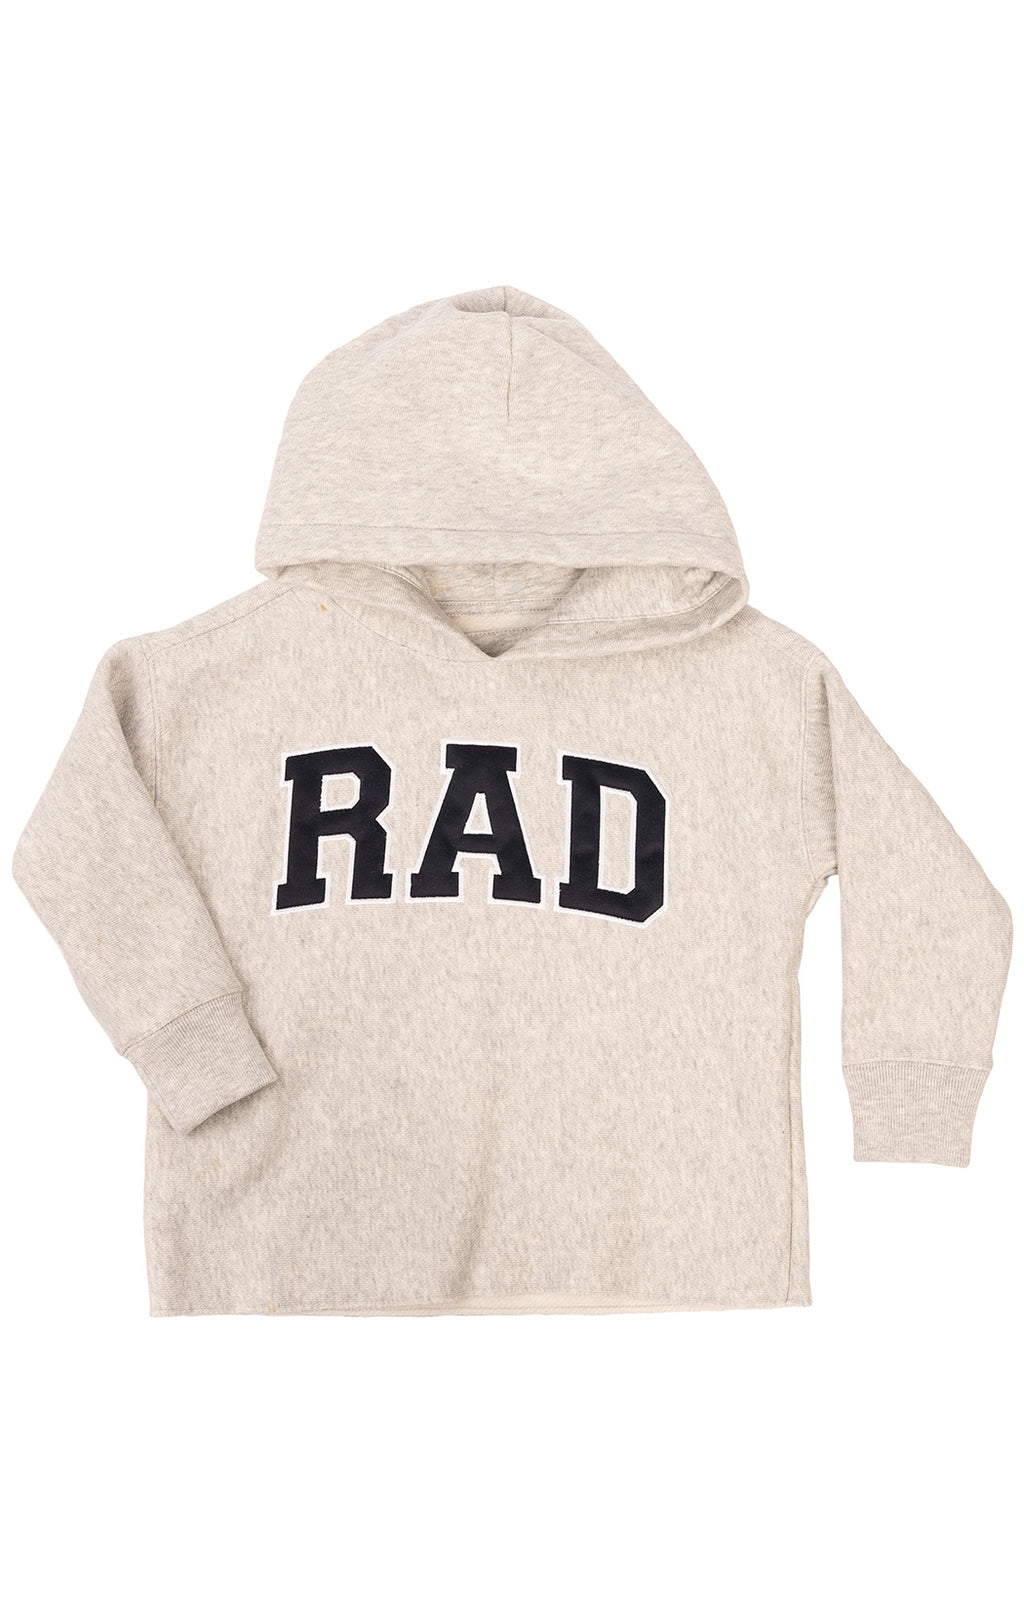 GAP Sweatshirt  Size: 4-5